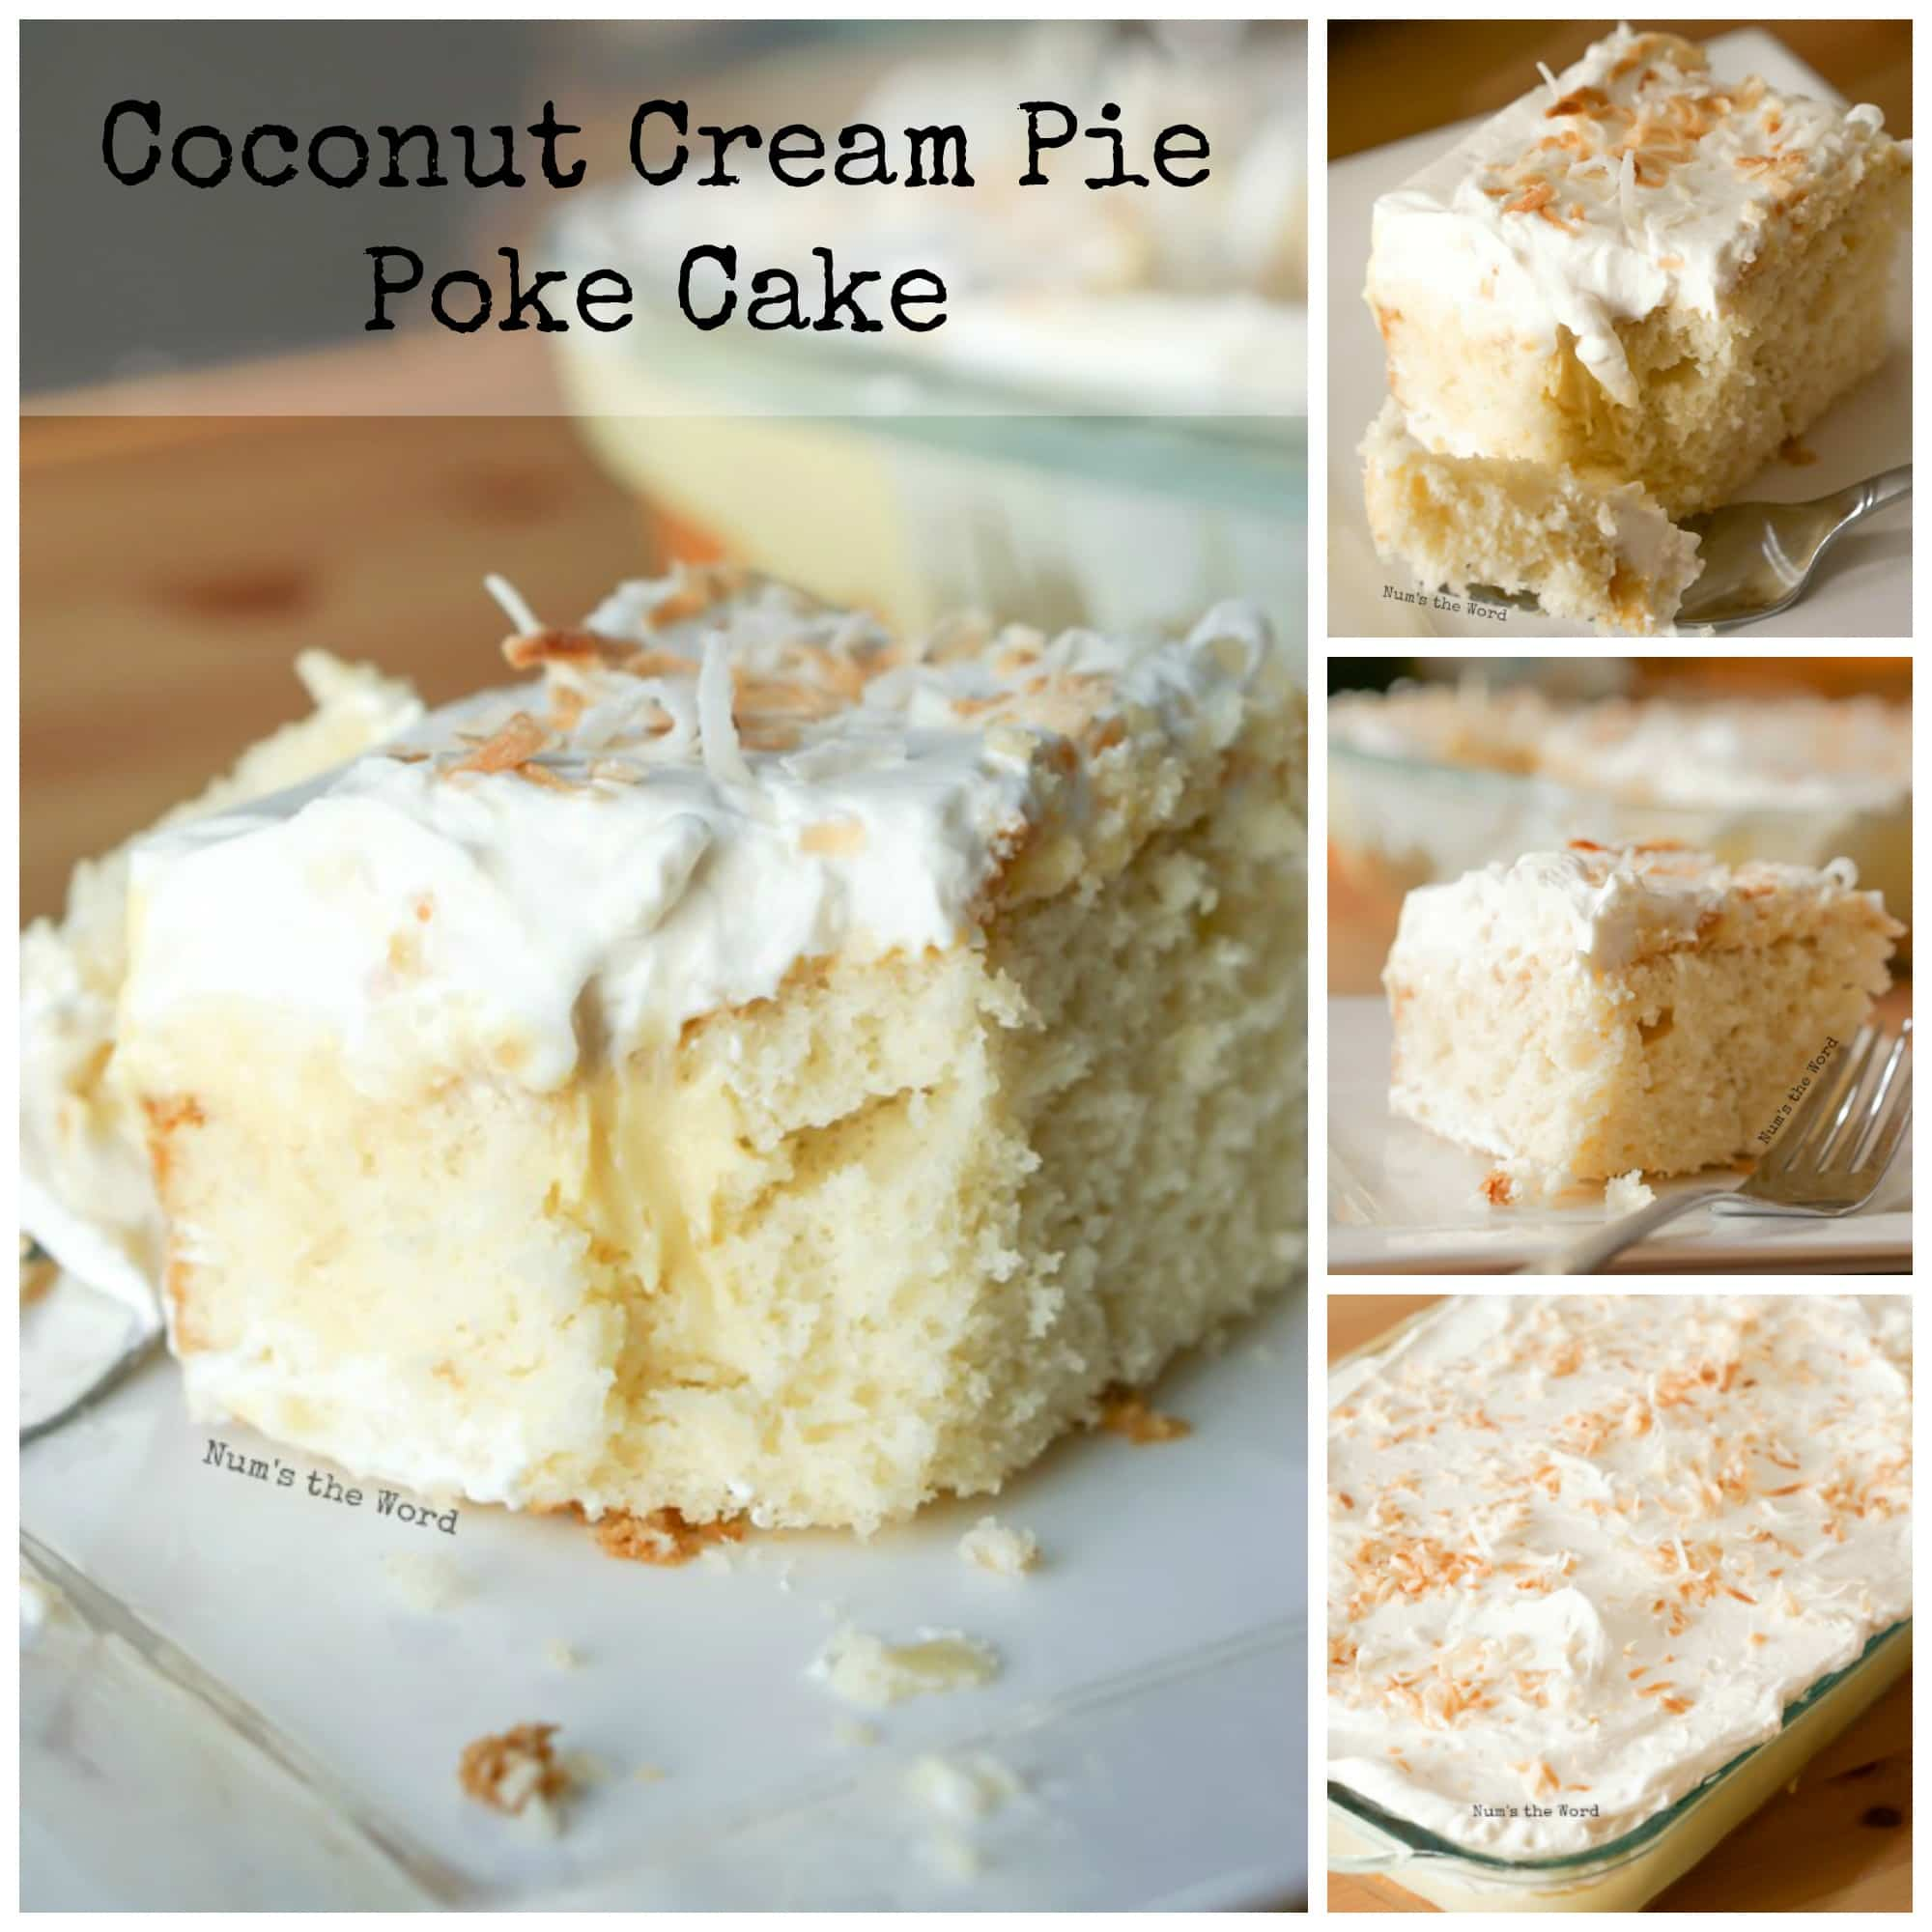 Coconut Cream Pie Poke Cake